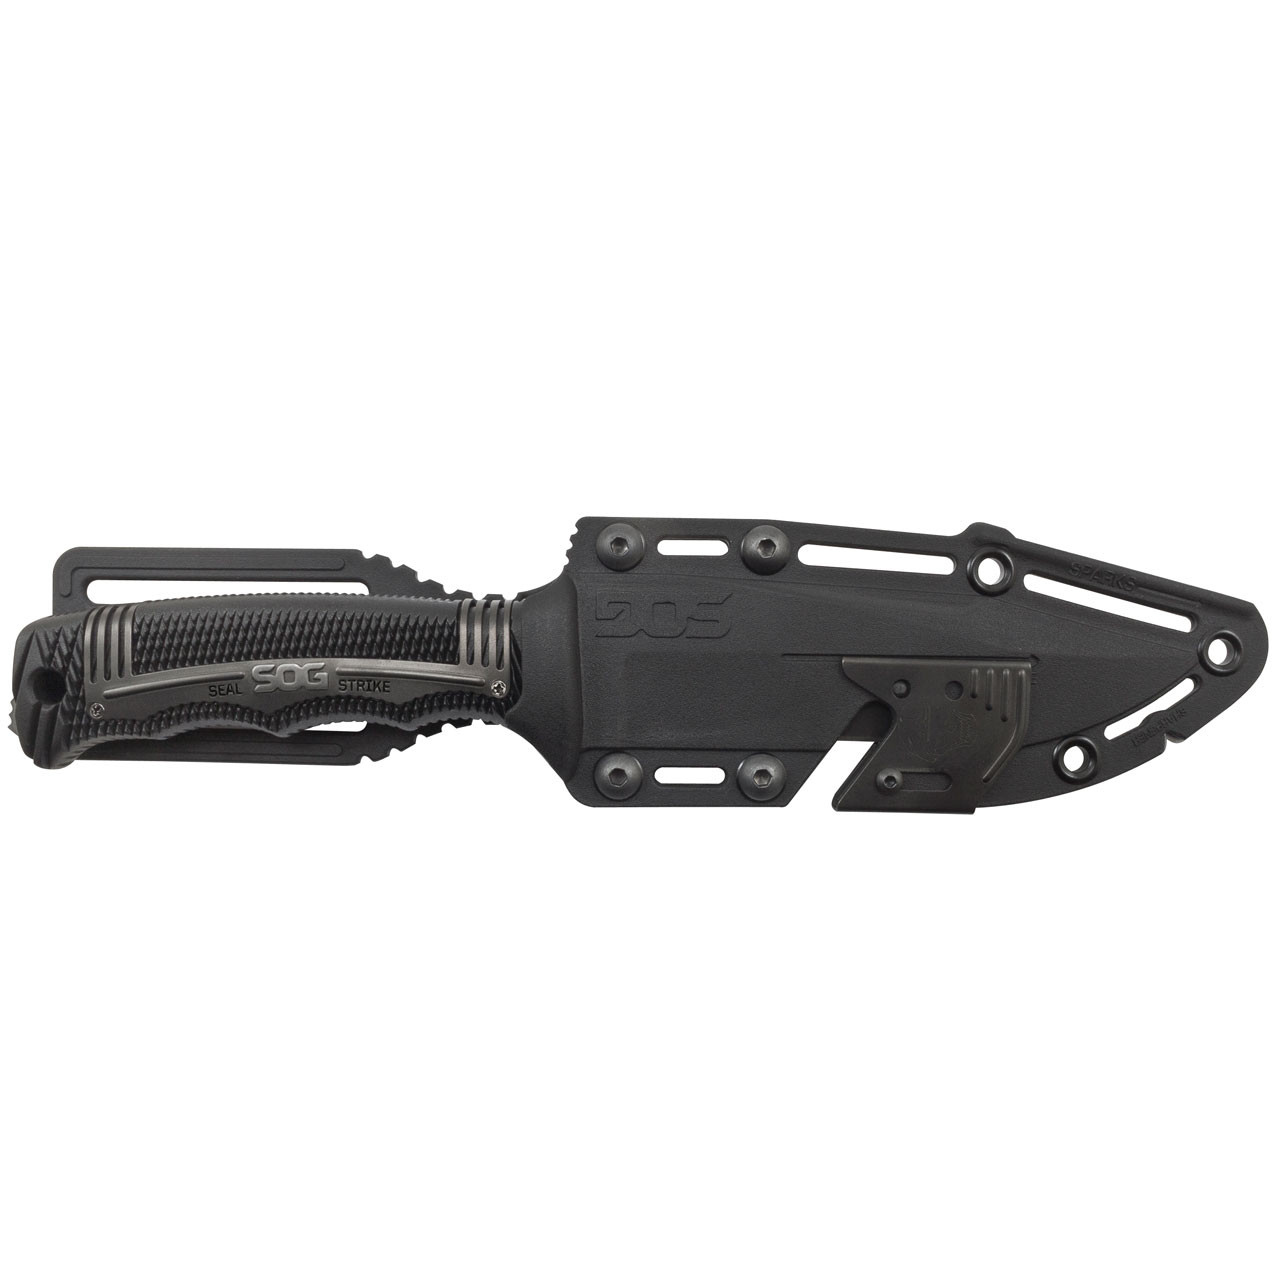 Seal Strike - Black, Sheath